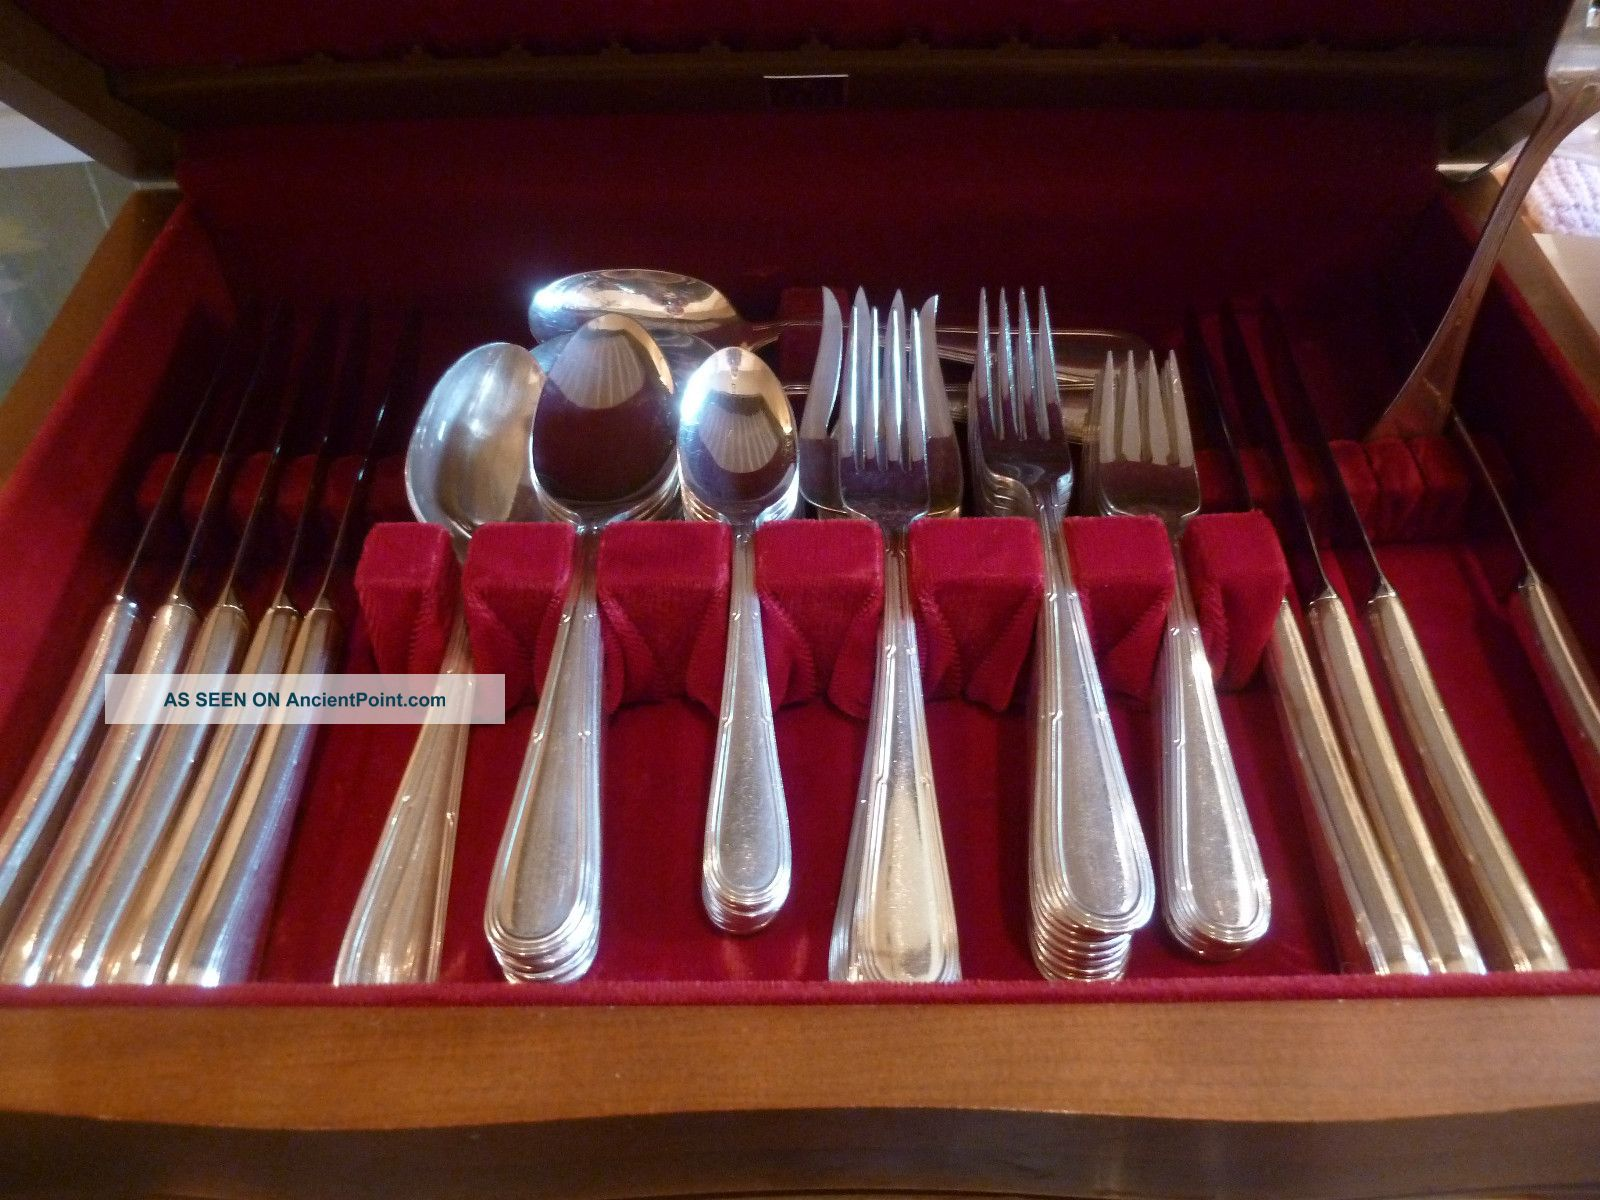 Silver Plate Oneida Silversmiths 5 Piece Service For 9 Plus Serving Pieces Other photo